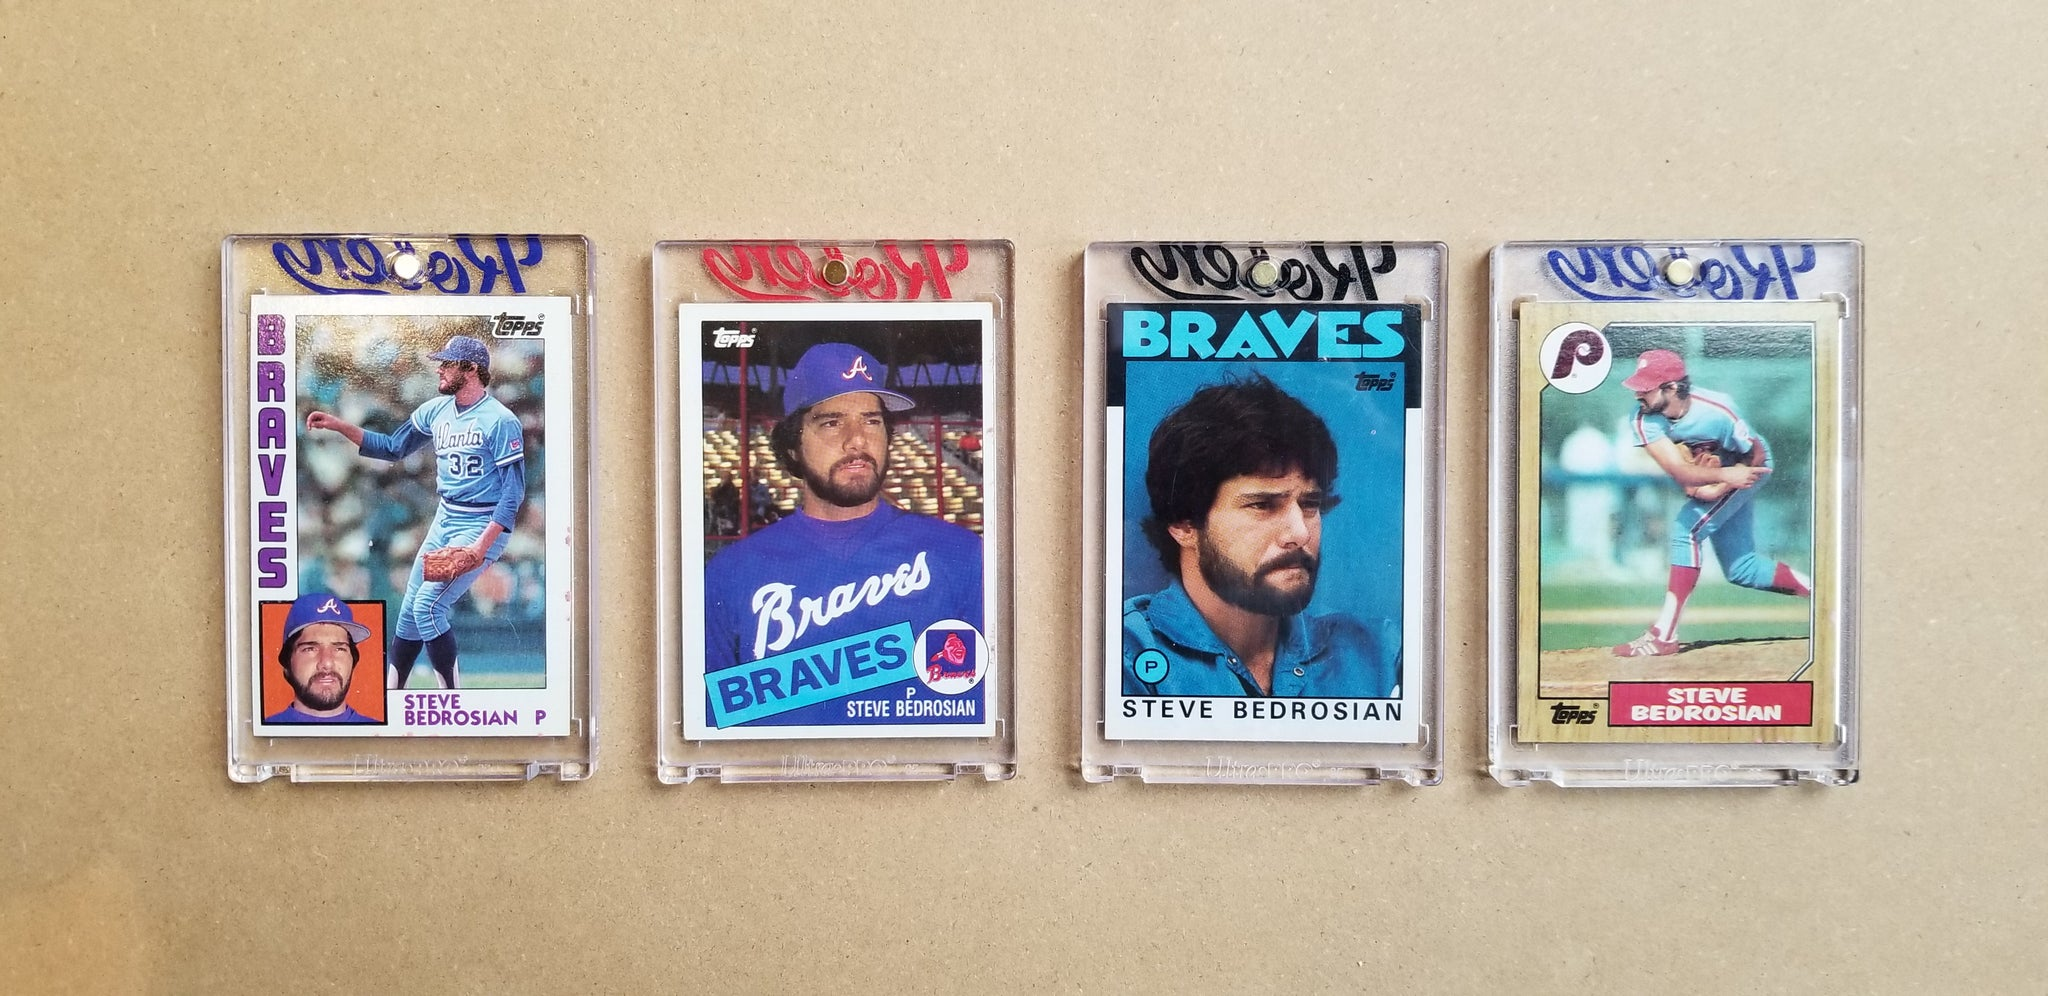 Baseball card art by Matthew Lee Rosen (aka Matthew Rosen) - Gum Stick Collector Cards - Steve Bedrosian